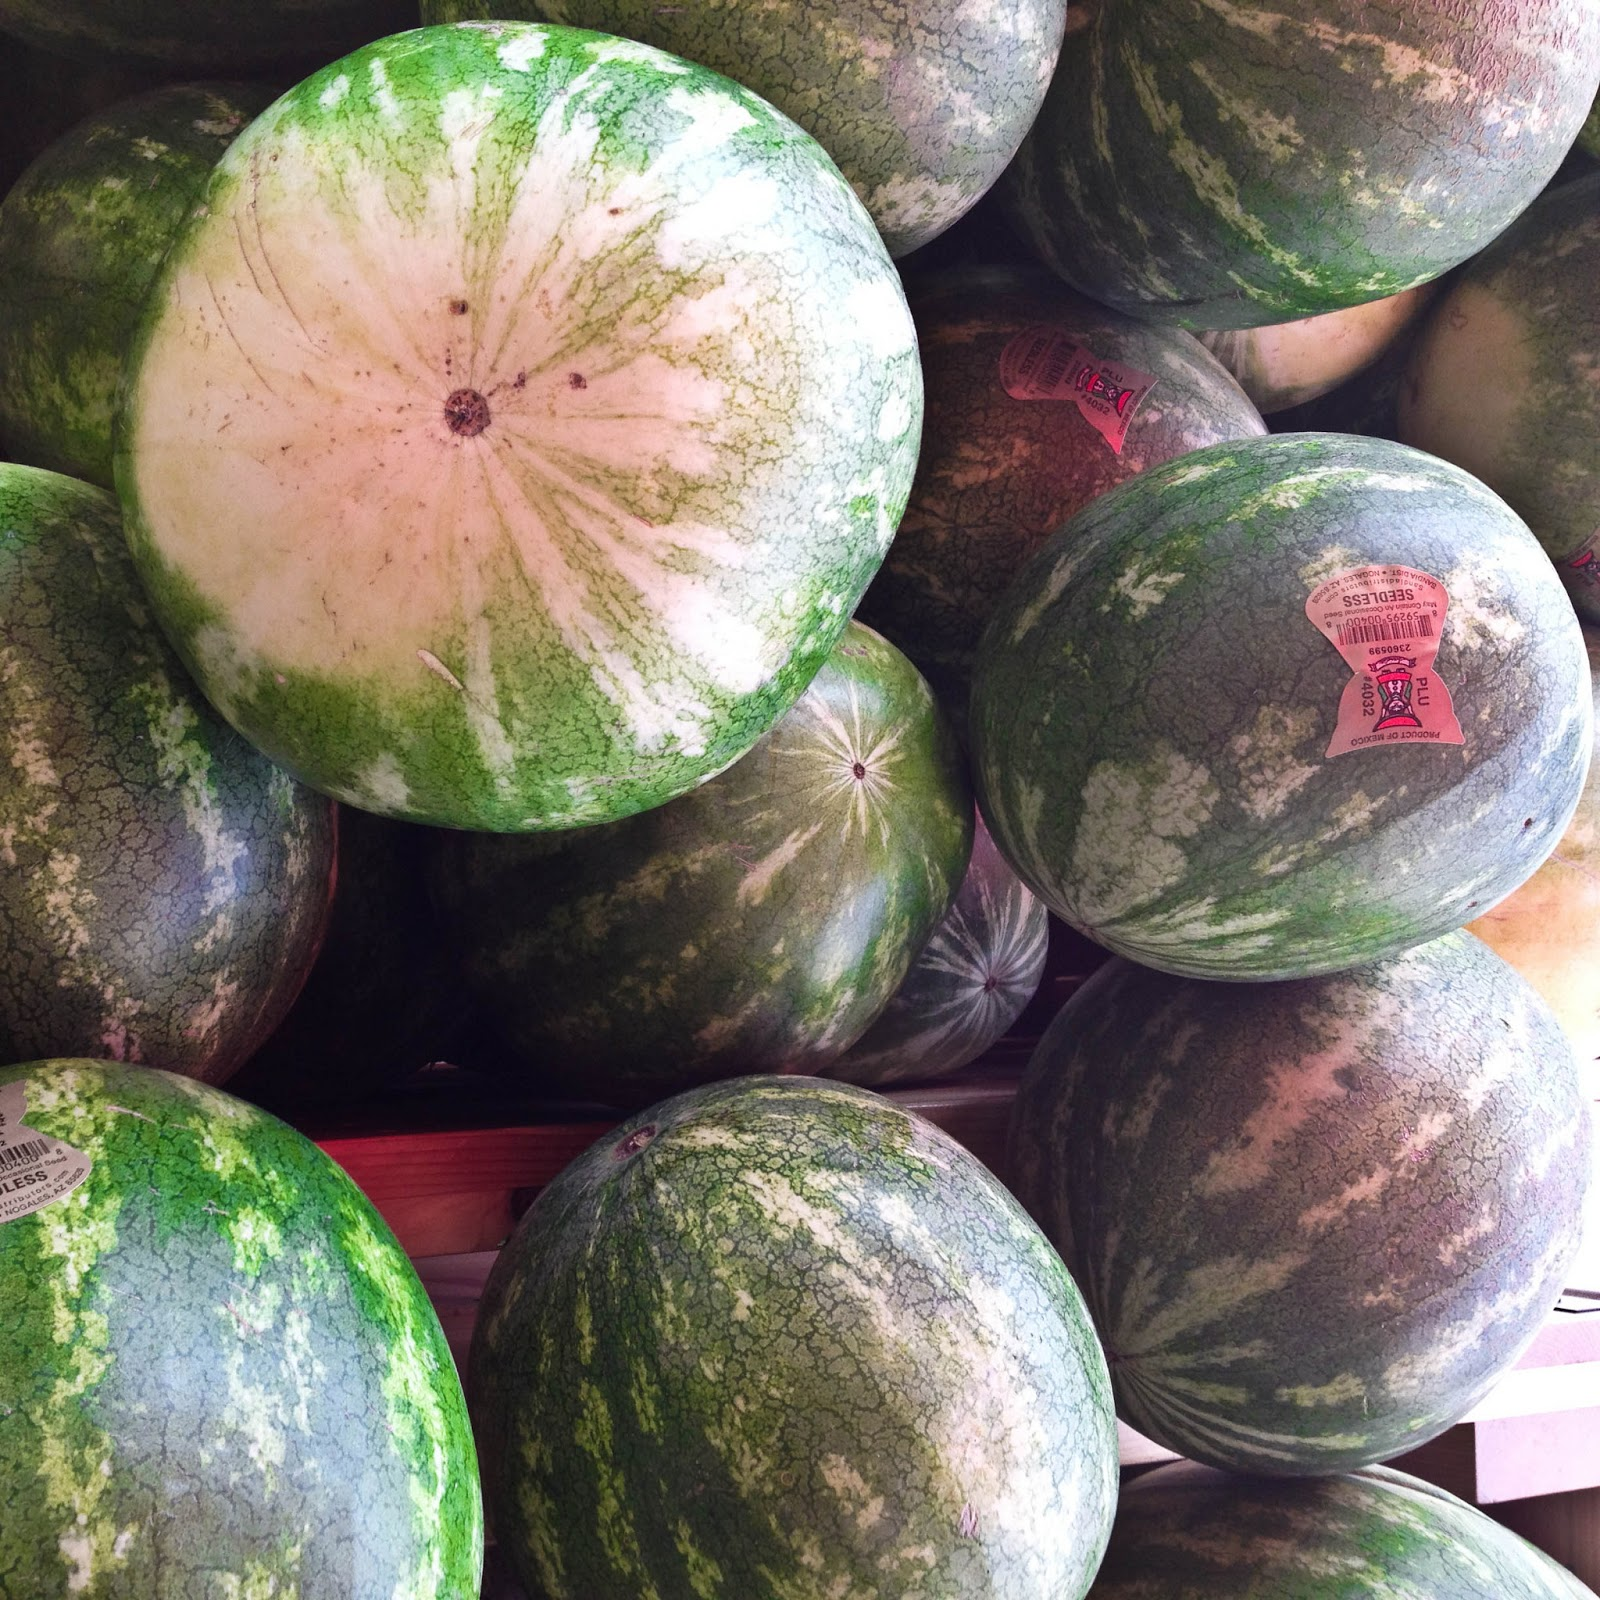 Reflections on a gift of watermelon pickle analysis